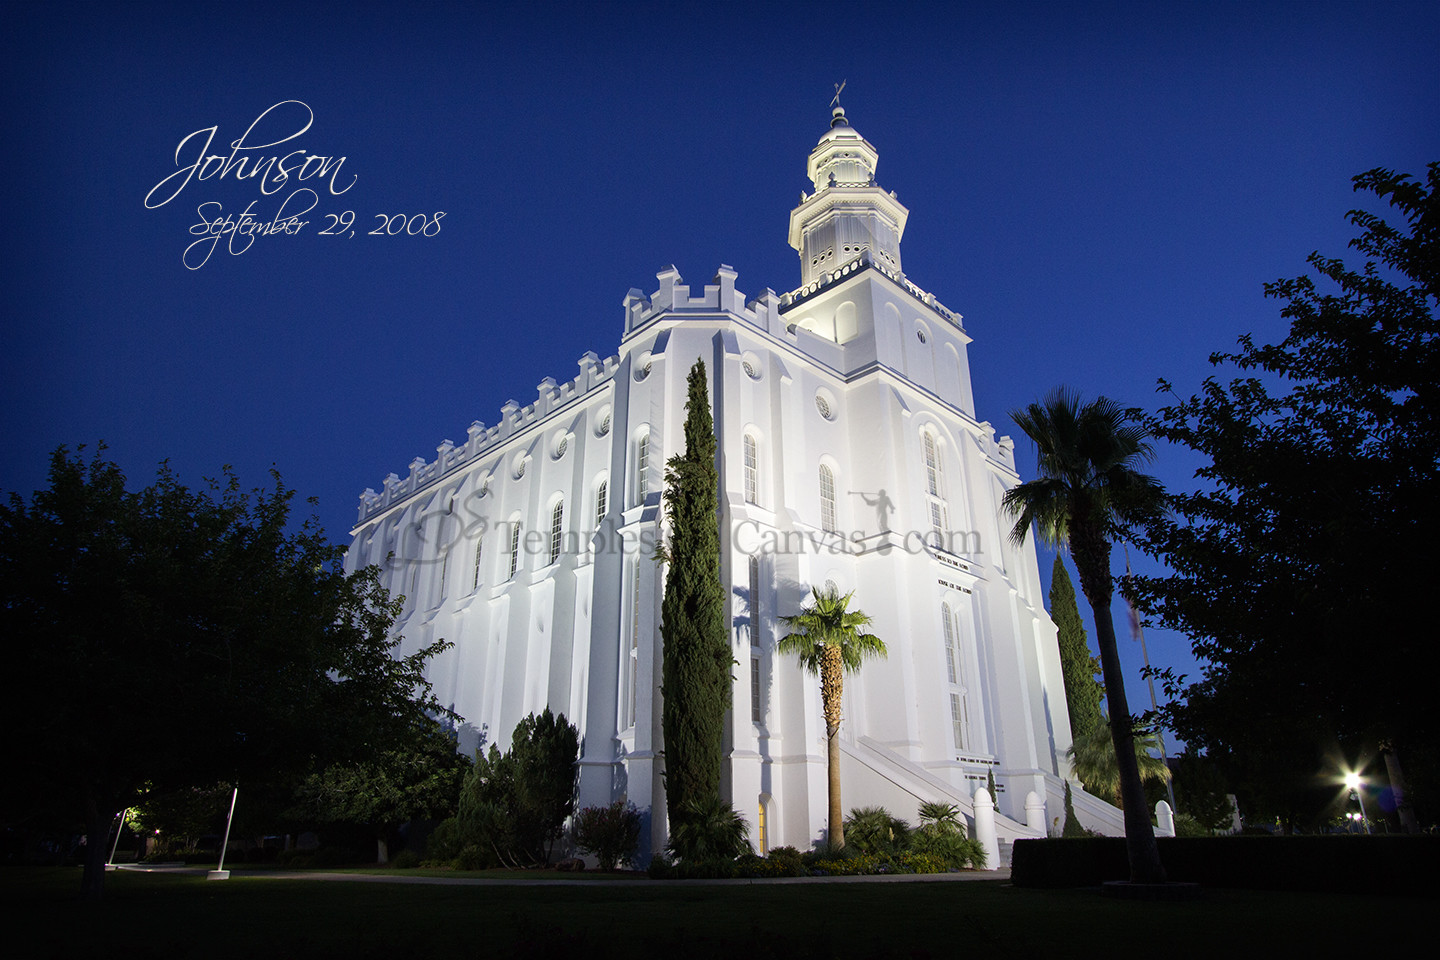 St. George UT Temple Art - Summer Evening